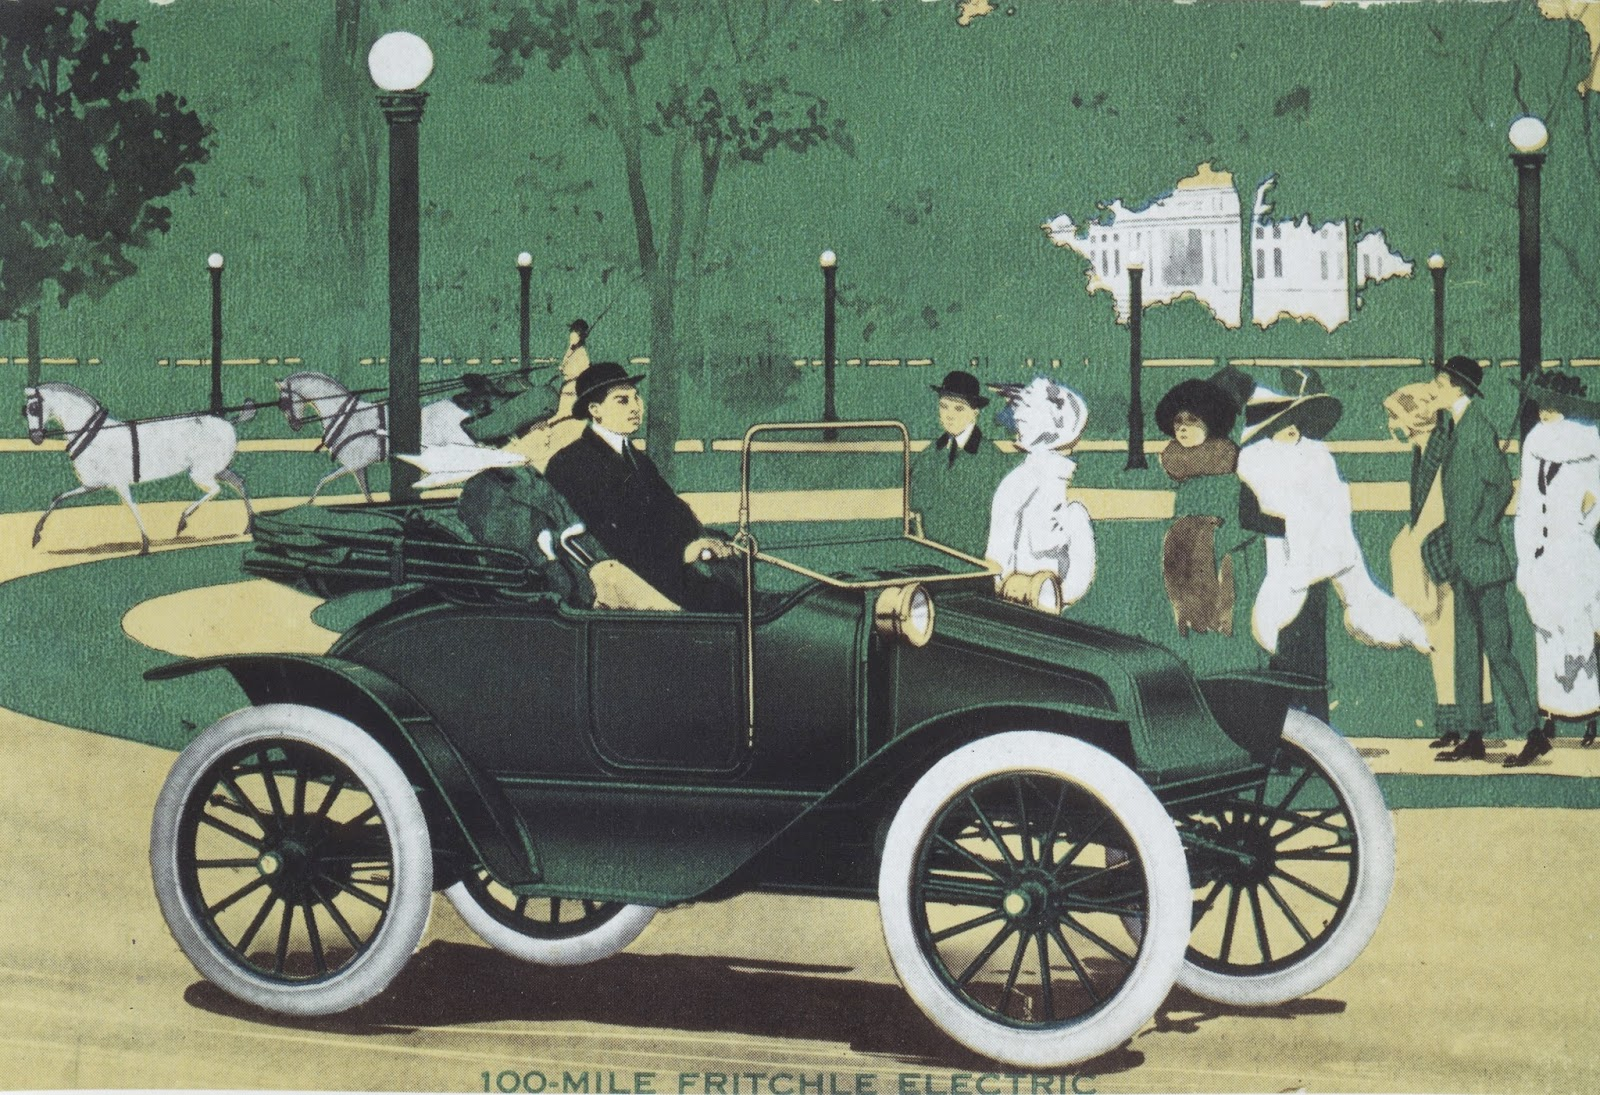 Colfax Avenue: Fritchle Electric Car Company